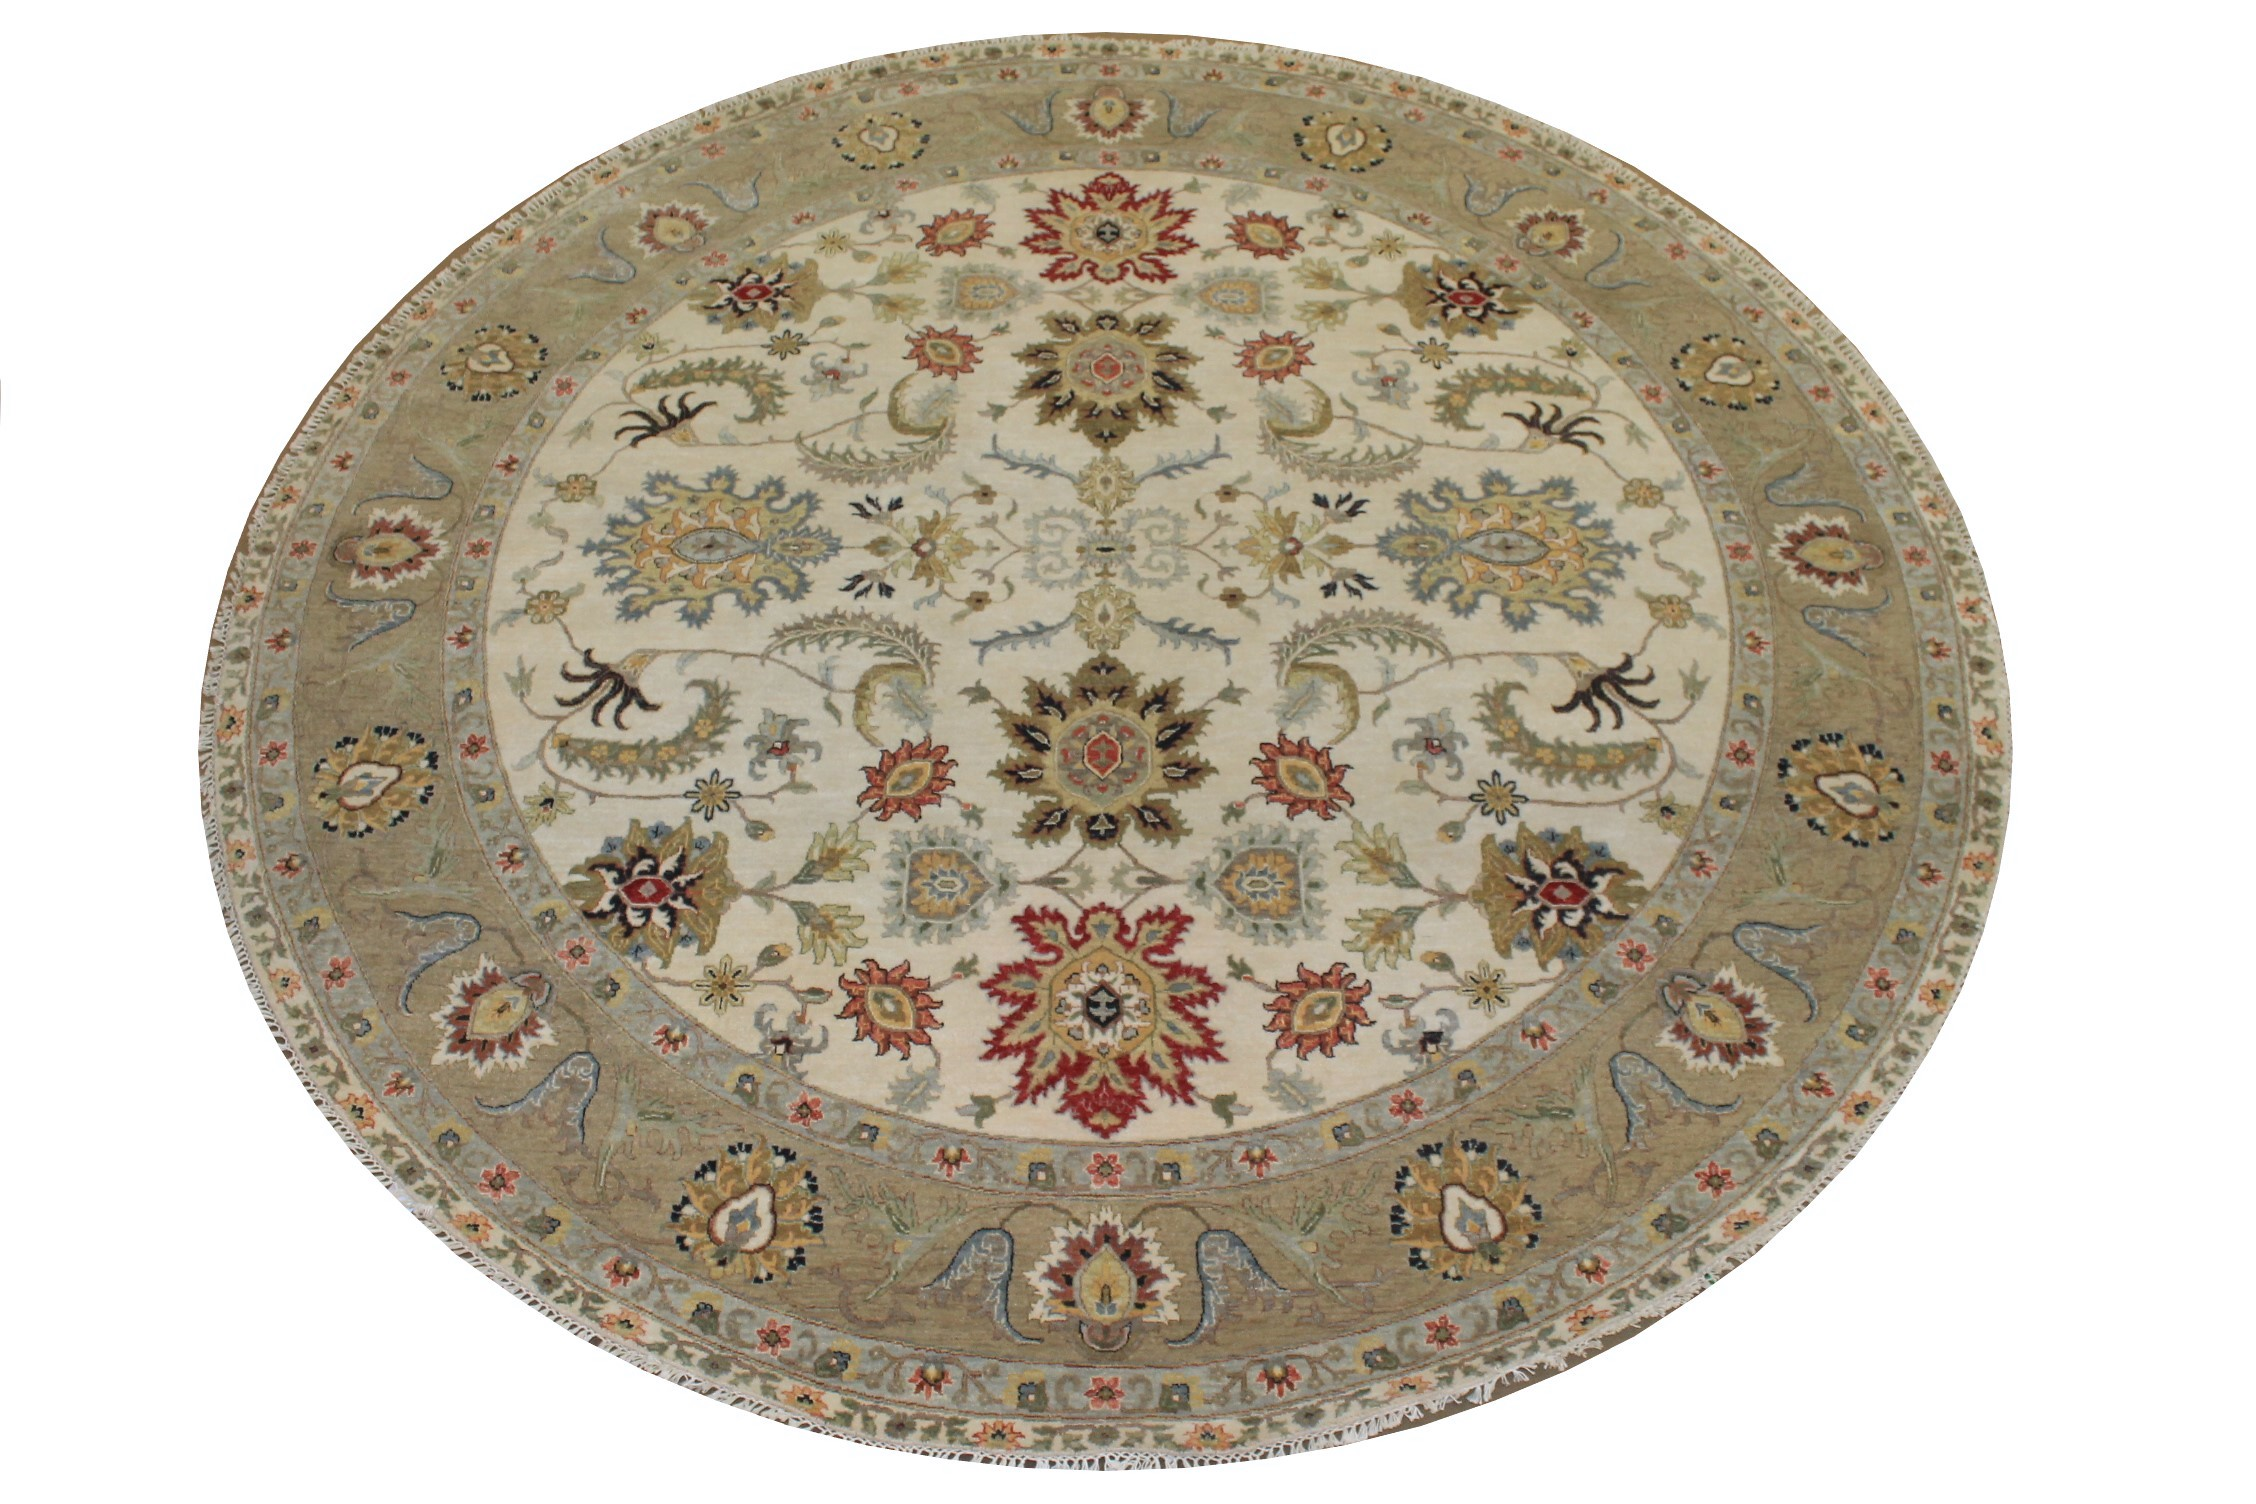 9 ft. & Over Round & Square Traditional Hand Knotted Wool Area Rug - MR025194